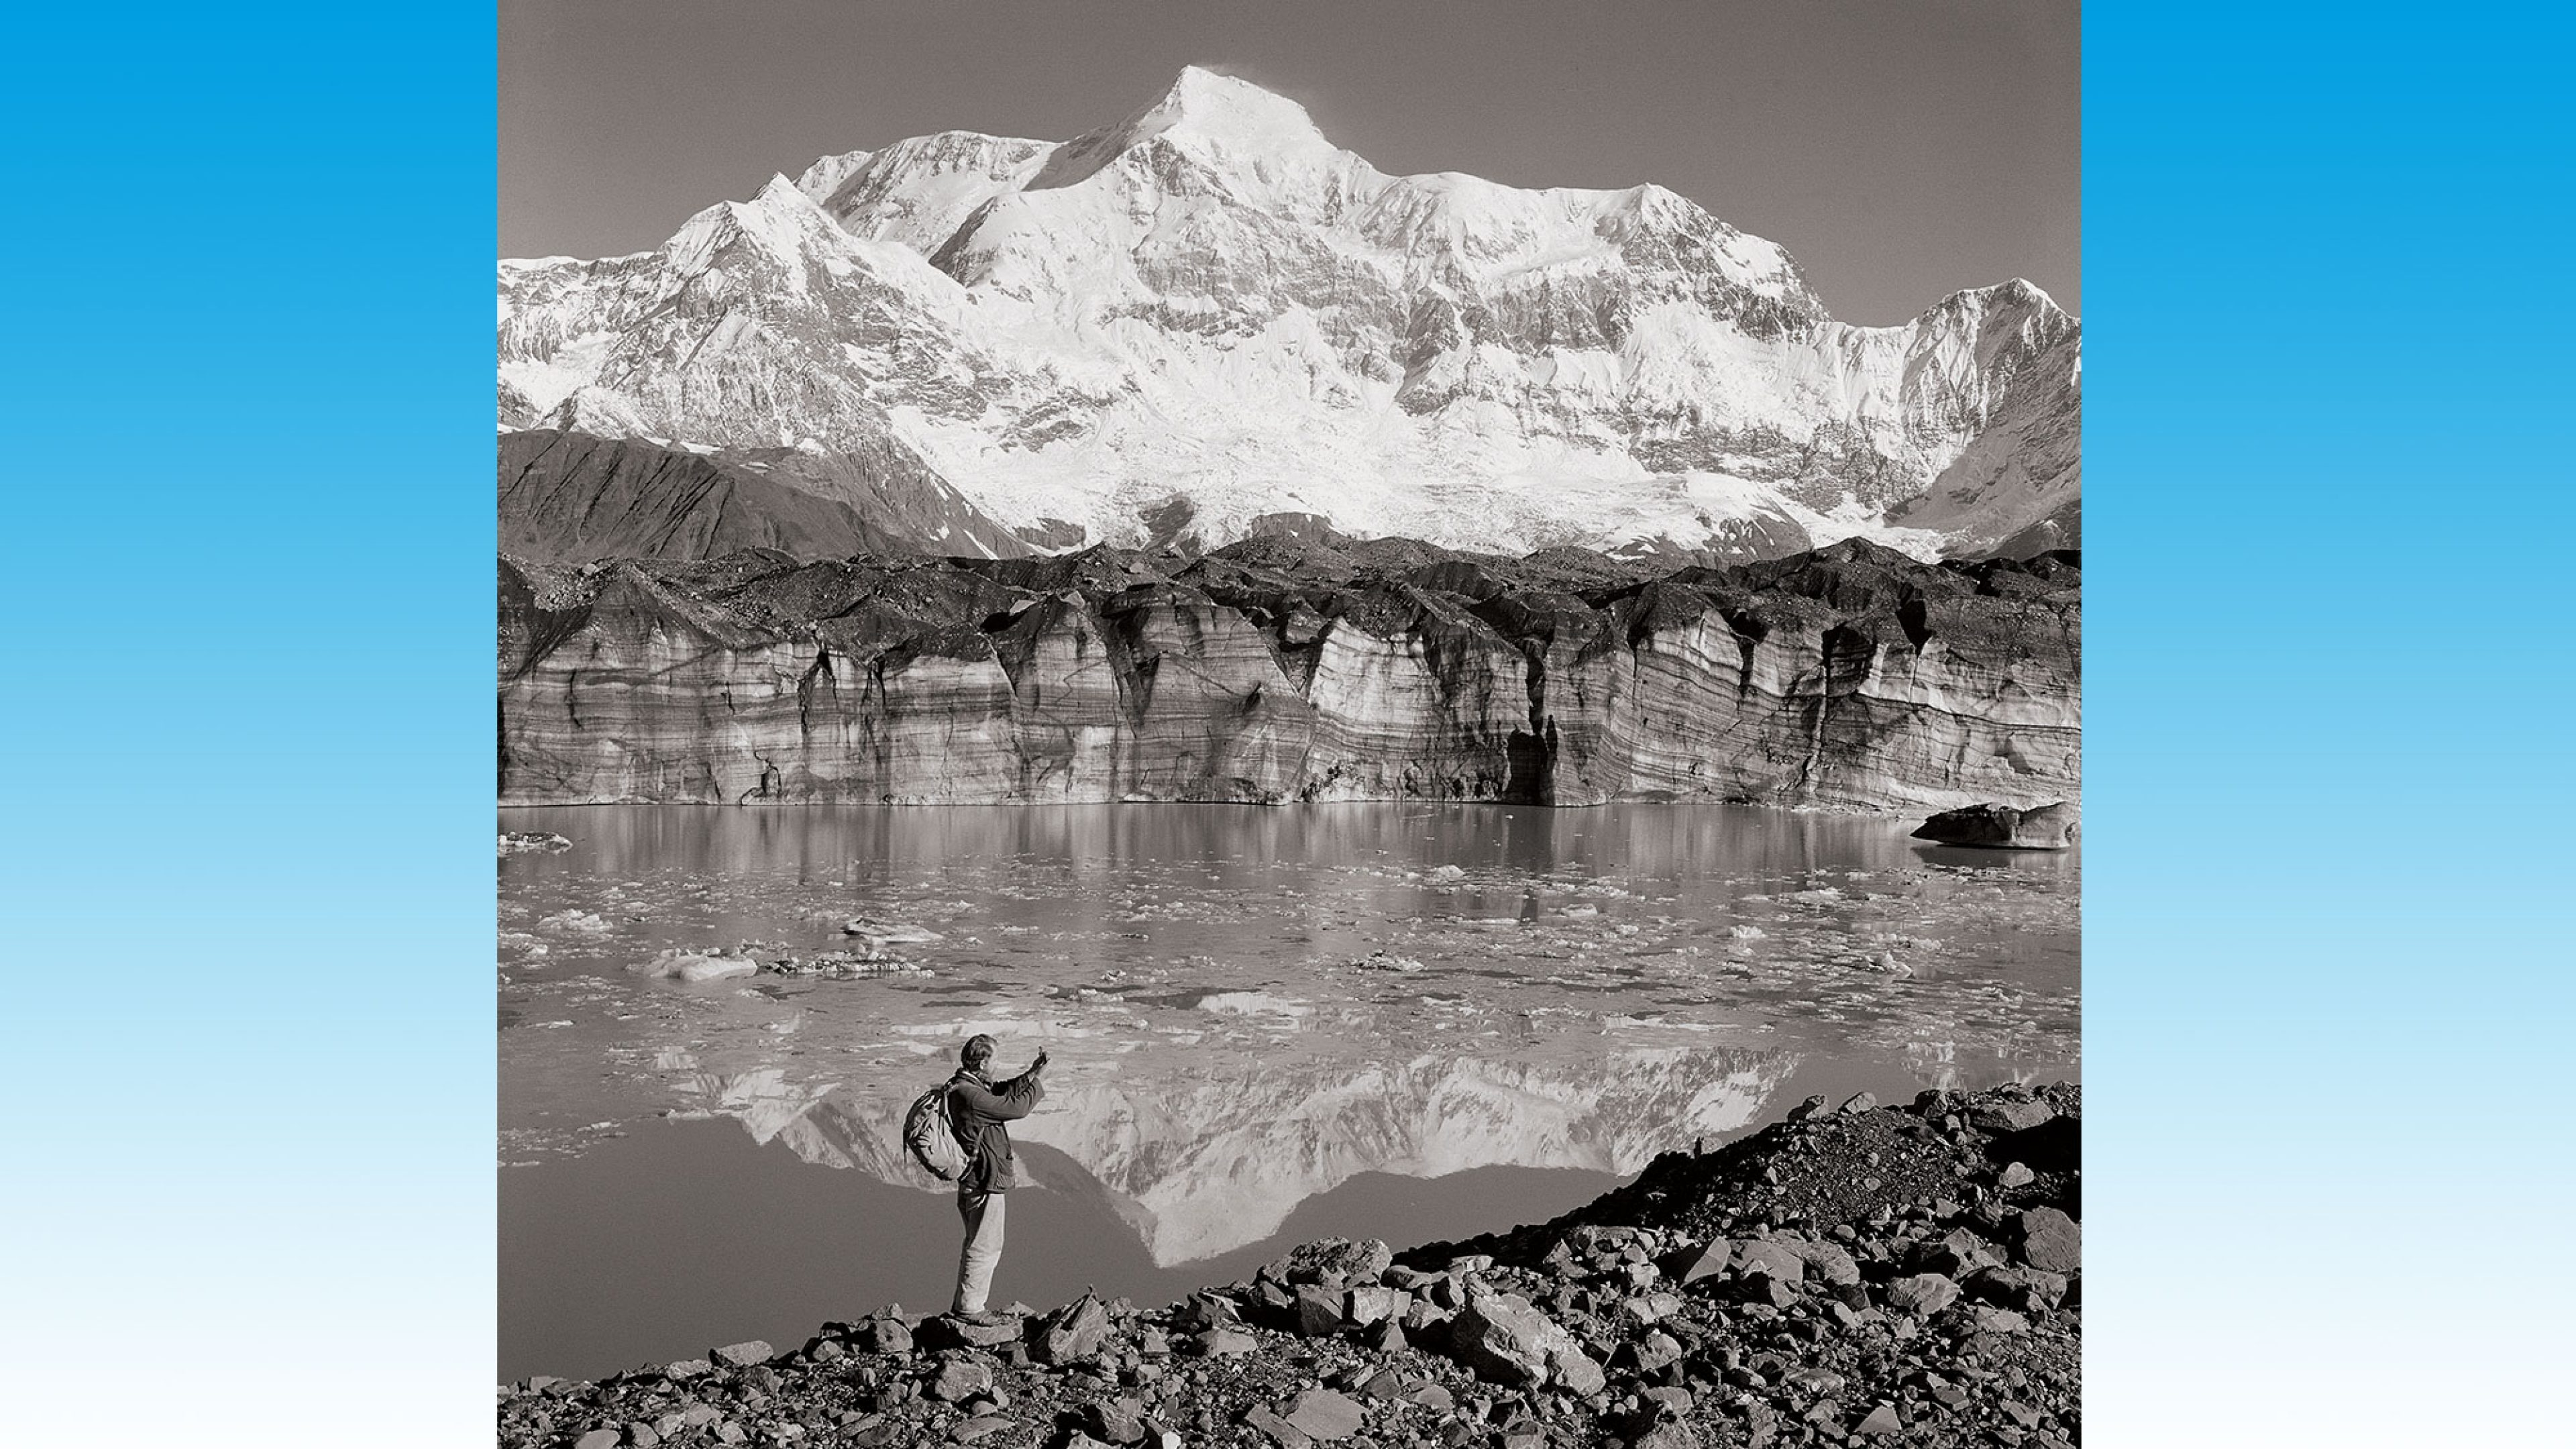 A BP explorer, standing by a glacial lake, while surveying in Alaska, 1961